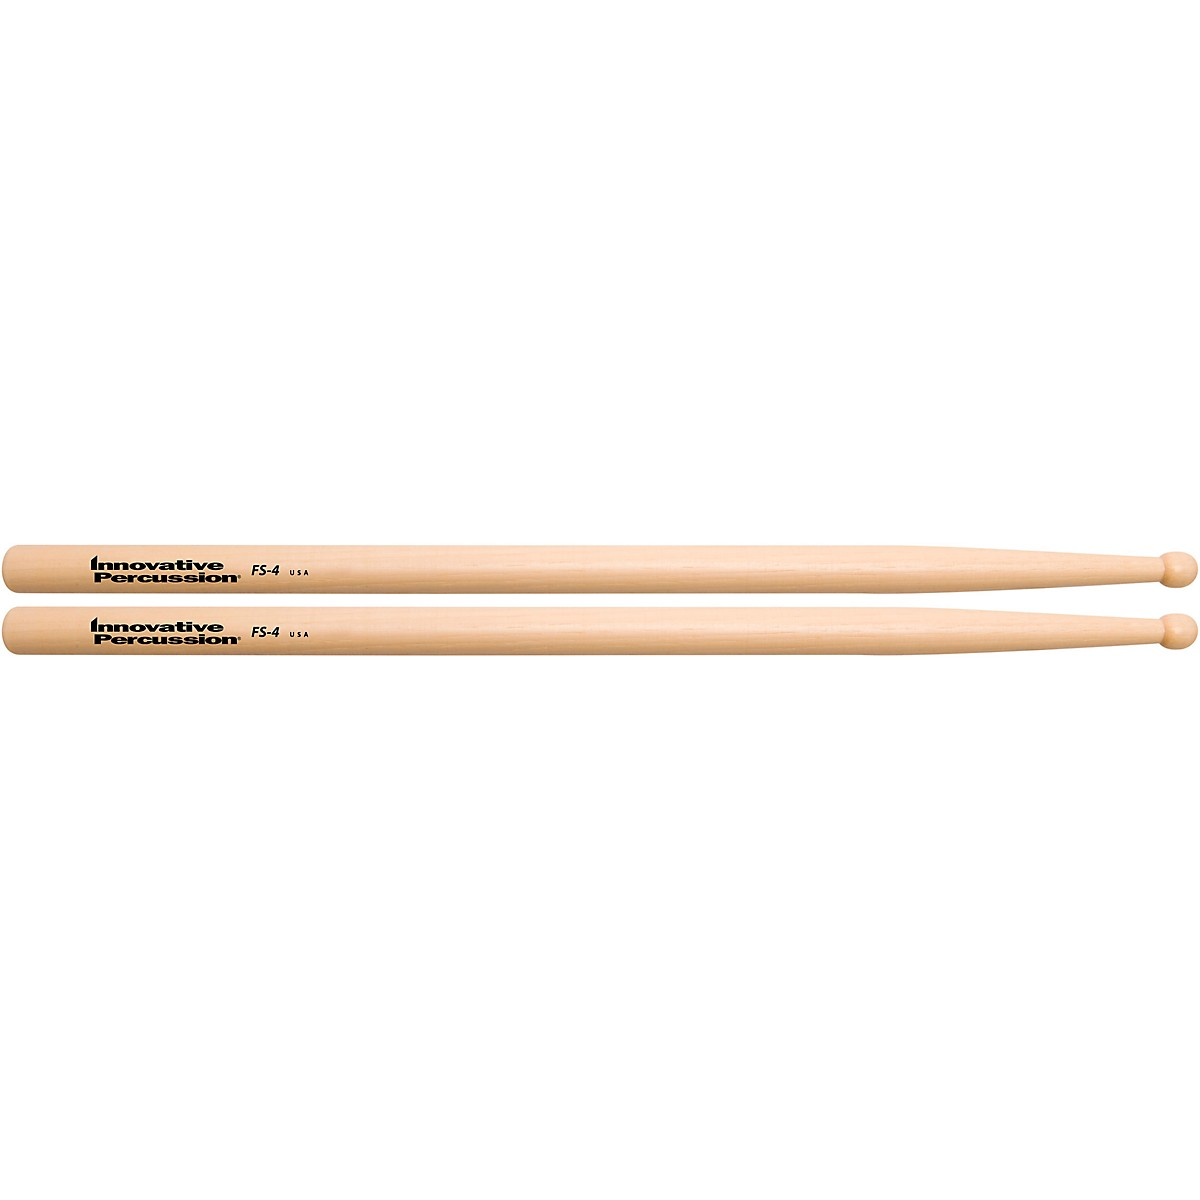 Innovative Percussion FS-4 Hickory Marching Snare Drum Stick